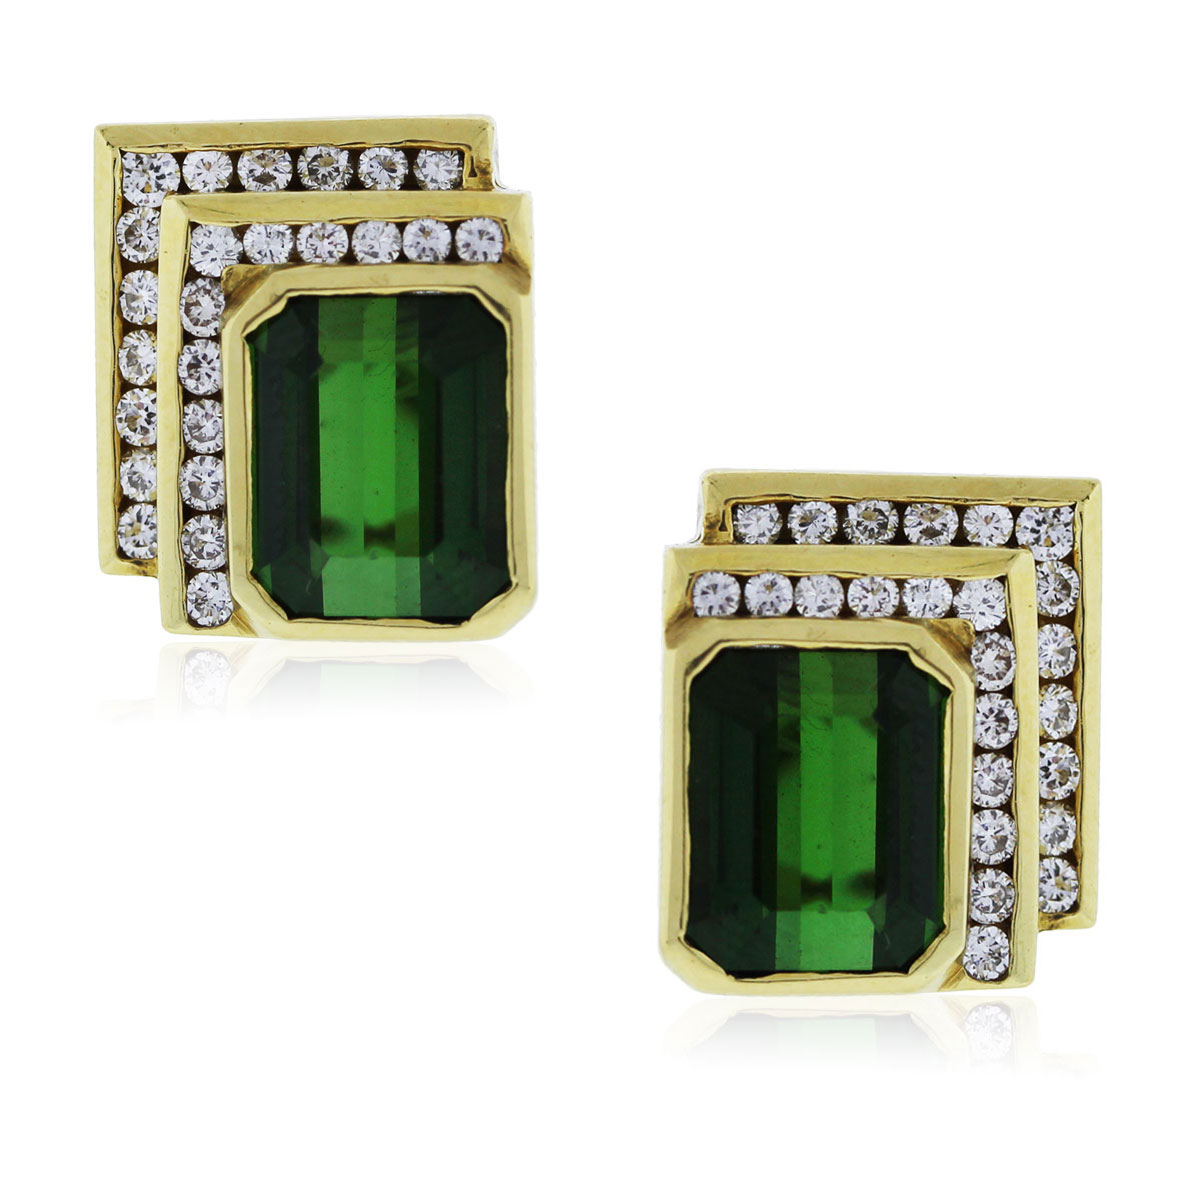 You are viewing these Yellow Gold Green Tourmaline and Diamond Earrings